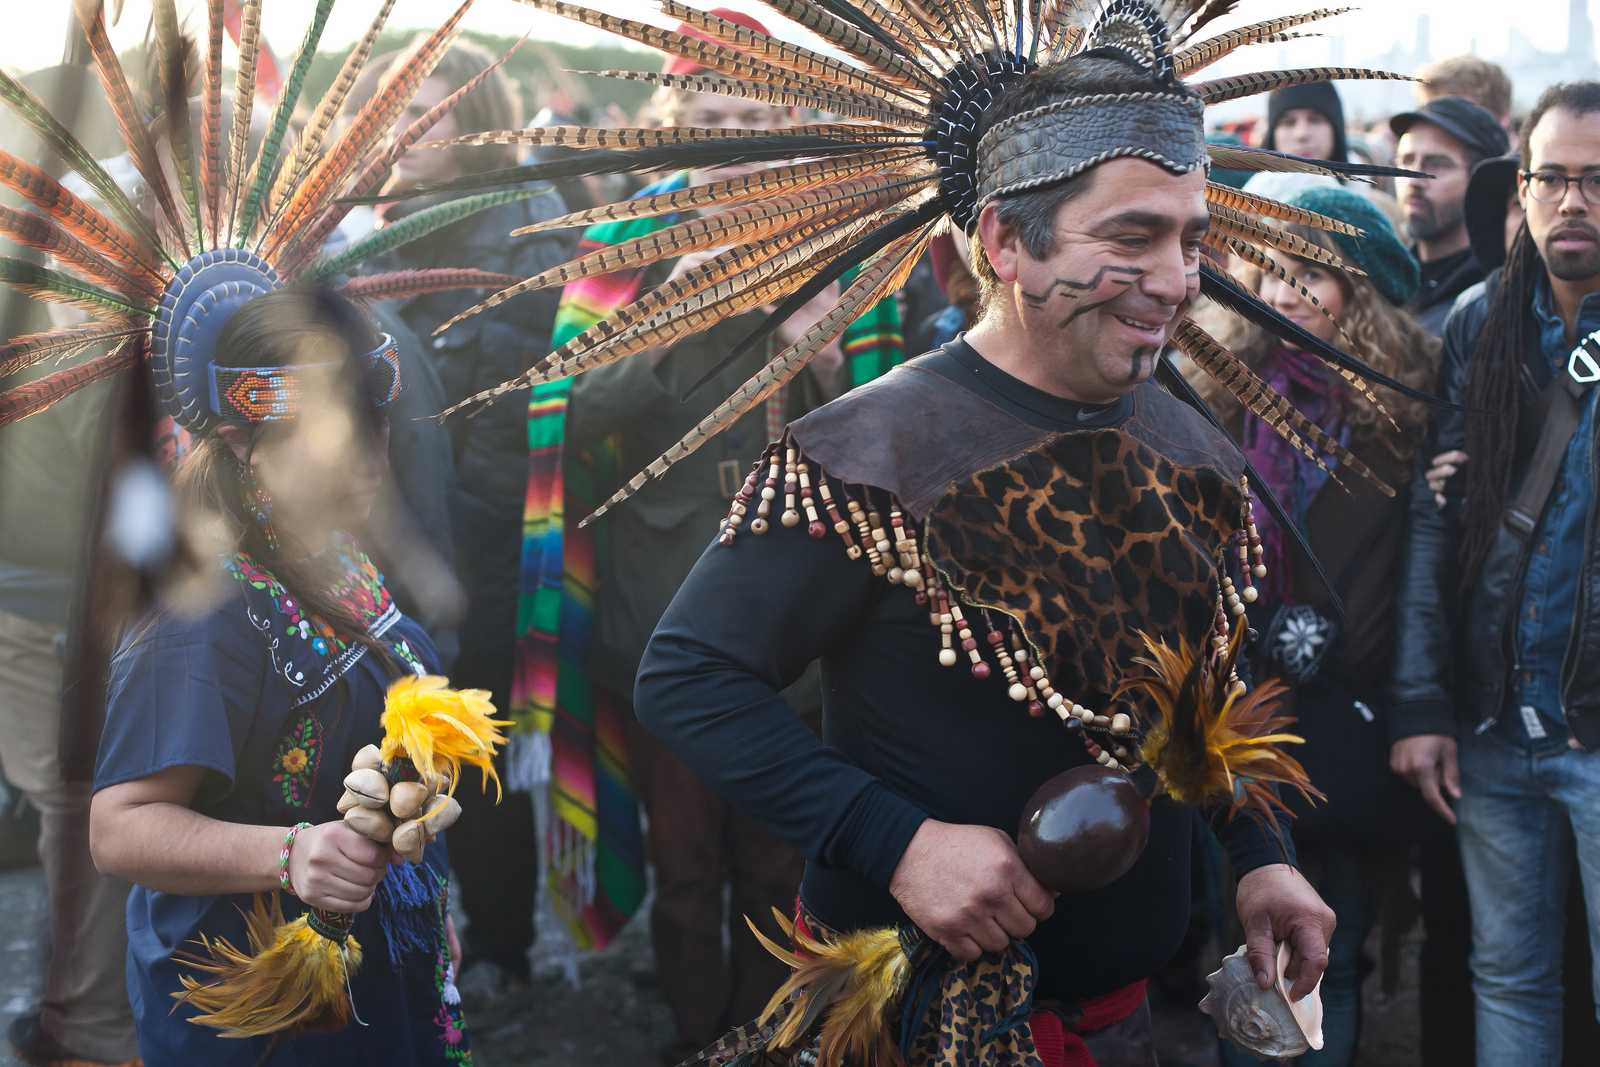 Pomo and Aztec dancers are a few of the participants in the Native American Sunrise Ceremony at Alcatraz on Thursday, Nov. 28. The annual ceremony commemorates the 1969-1971 activist occupation. Photo by Dariel Medina / Xpress